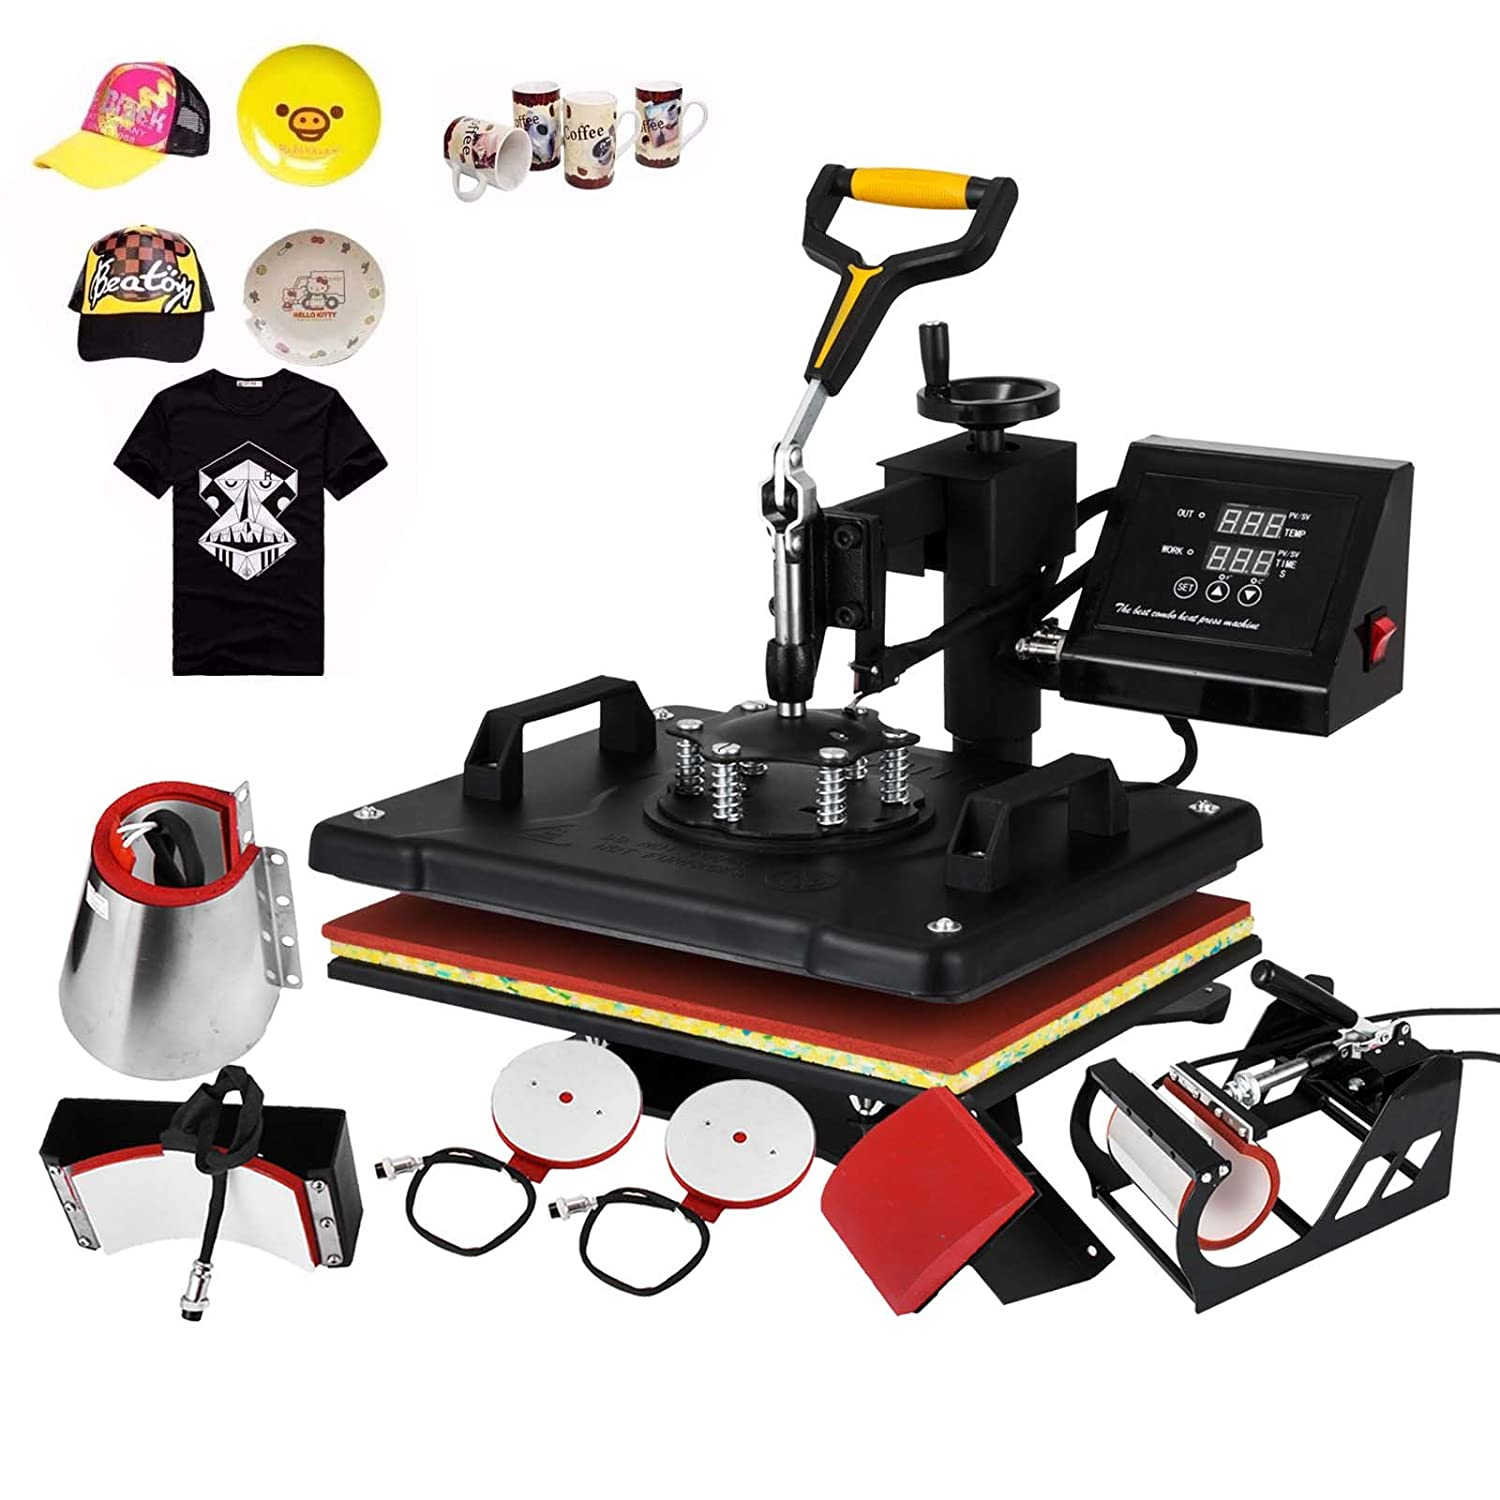 Happybuy Heat Press Machine 12x15 Inch 360 Degree Swing Away Heat Press 5 IN1 Multifunction Sublimation T Shirt Press Mug Cap Plate with Dual Digital Controller (5in1 15